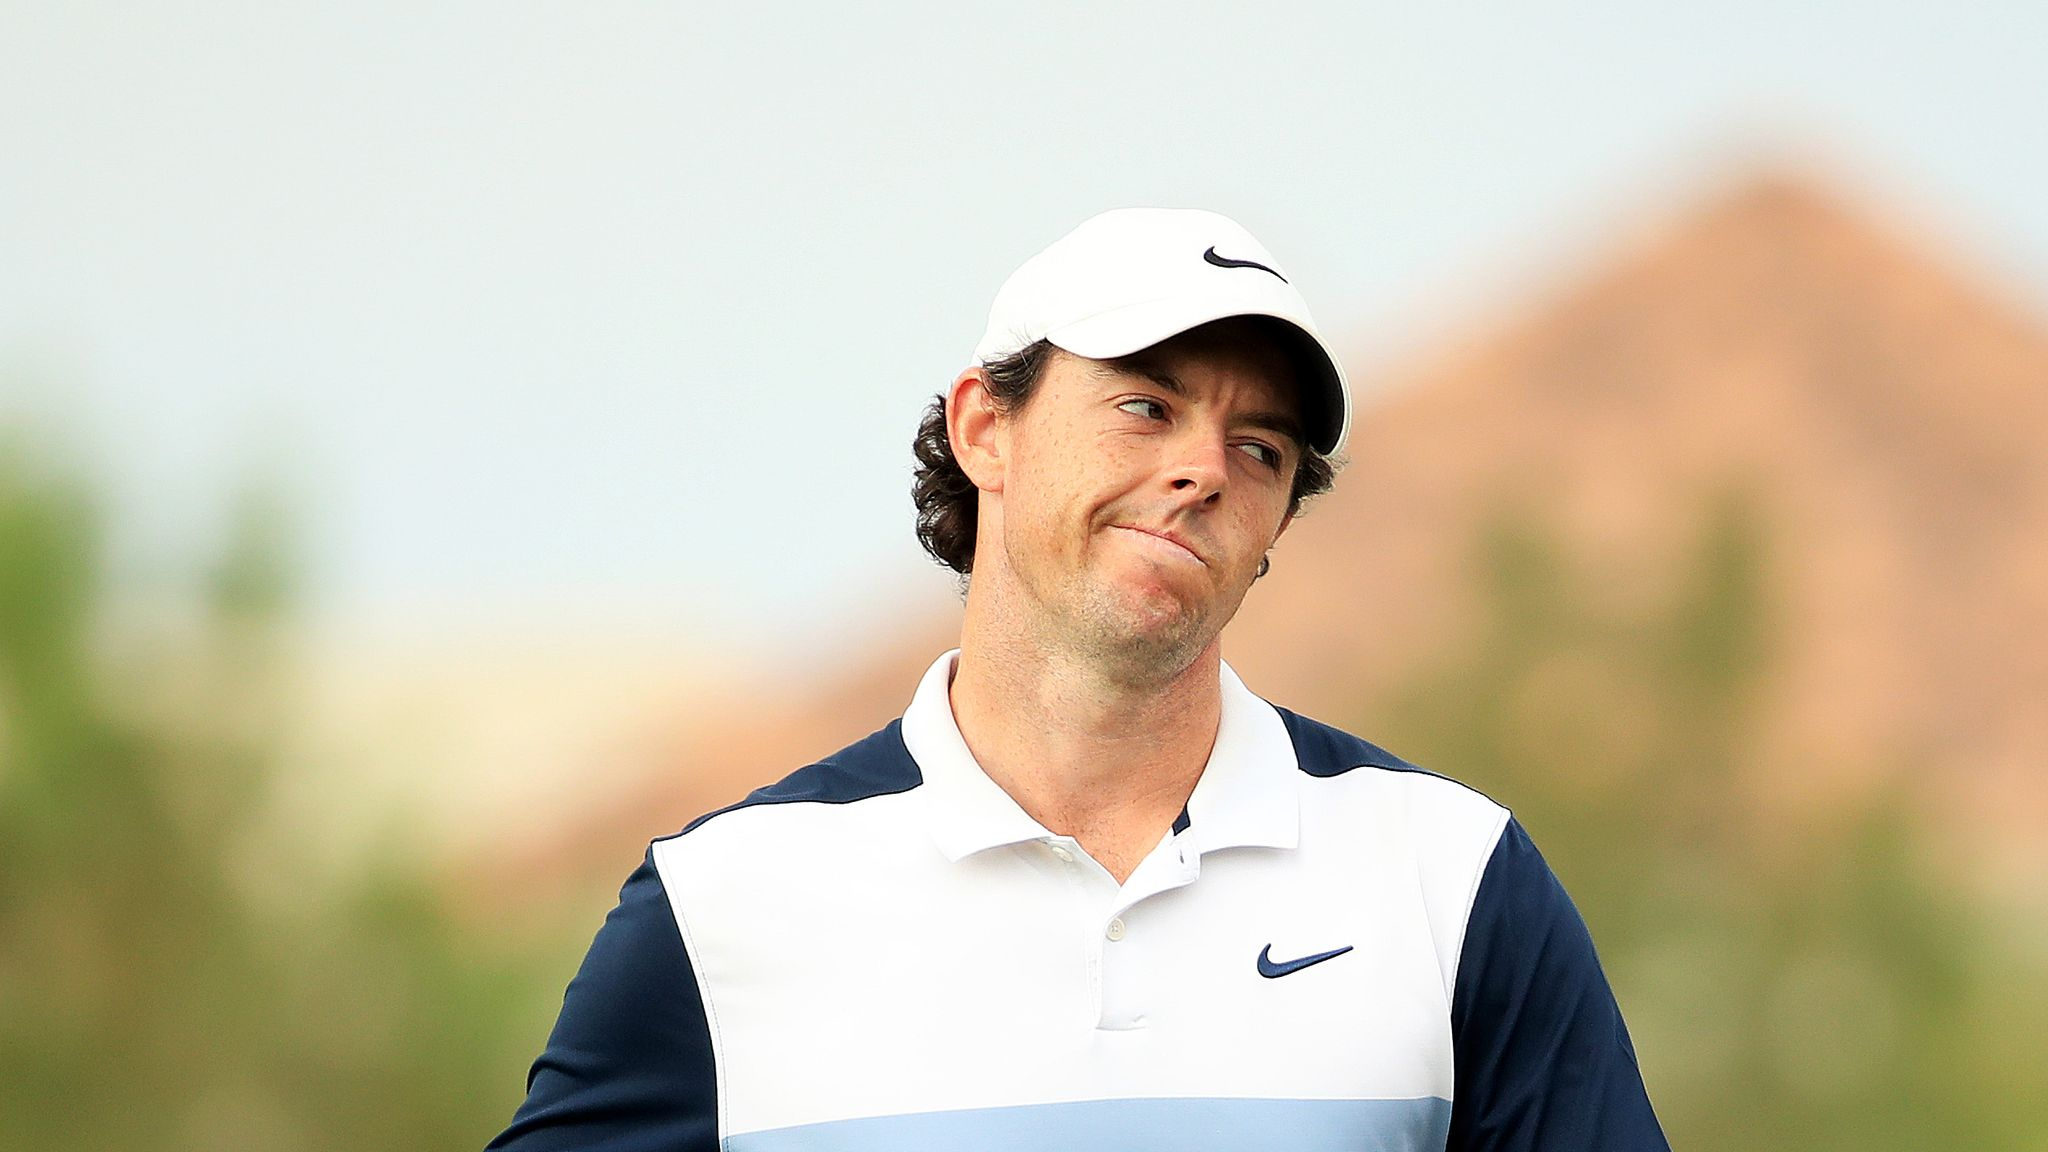 Rory McIlroy hails stunning eagle finish to opening round in Dubai